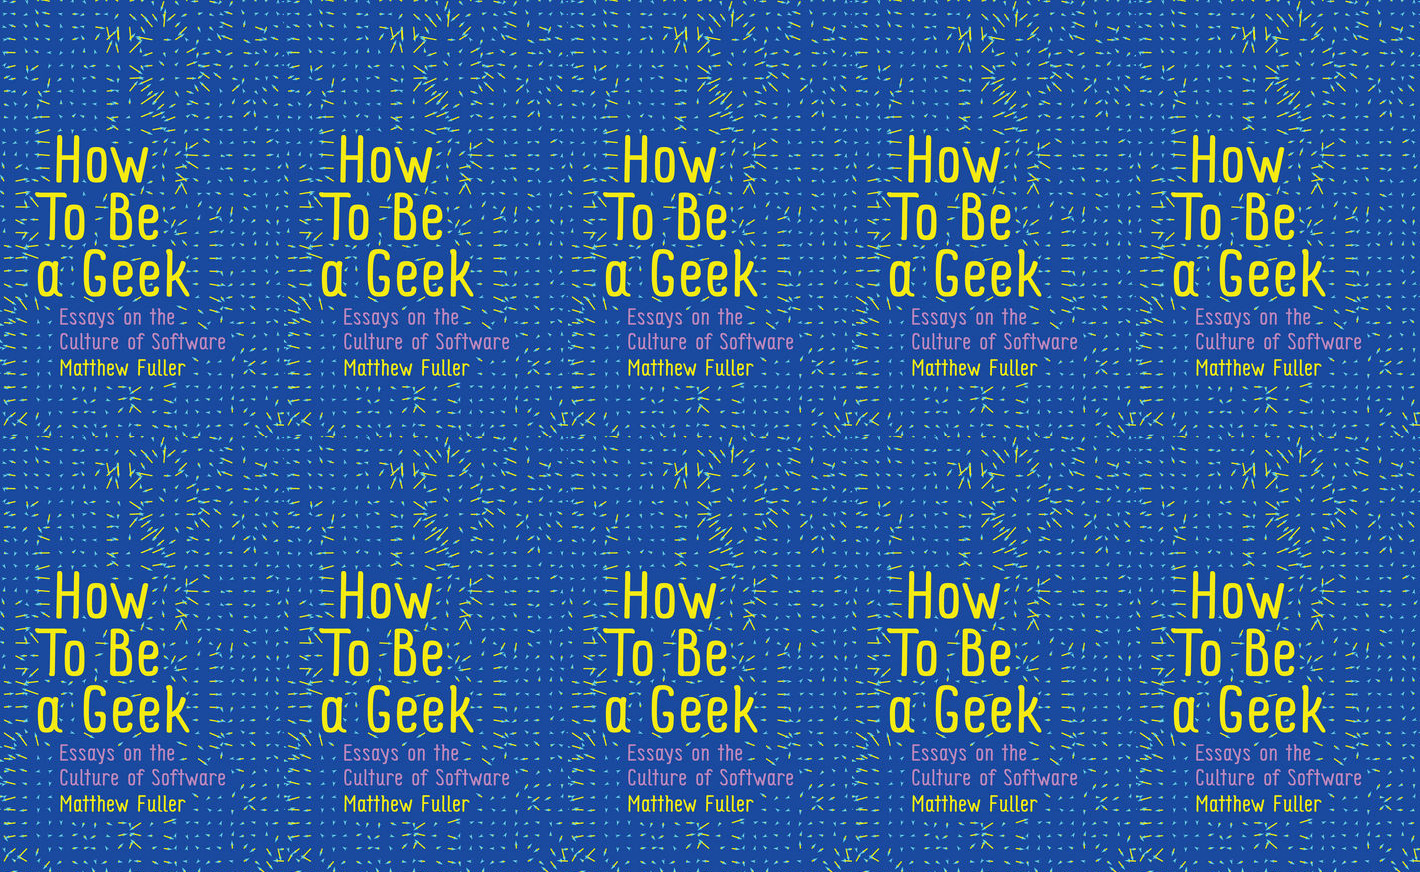 Matthew Fuller – How To Be a Geek: Essays on the Culture of Software